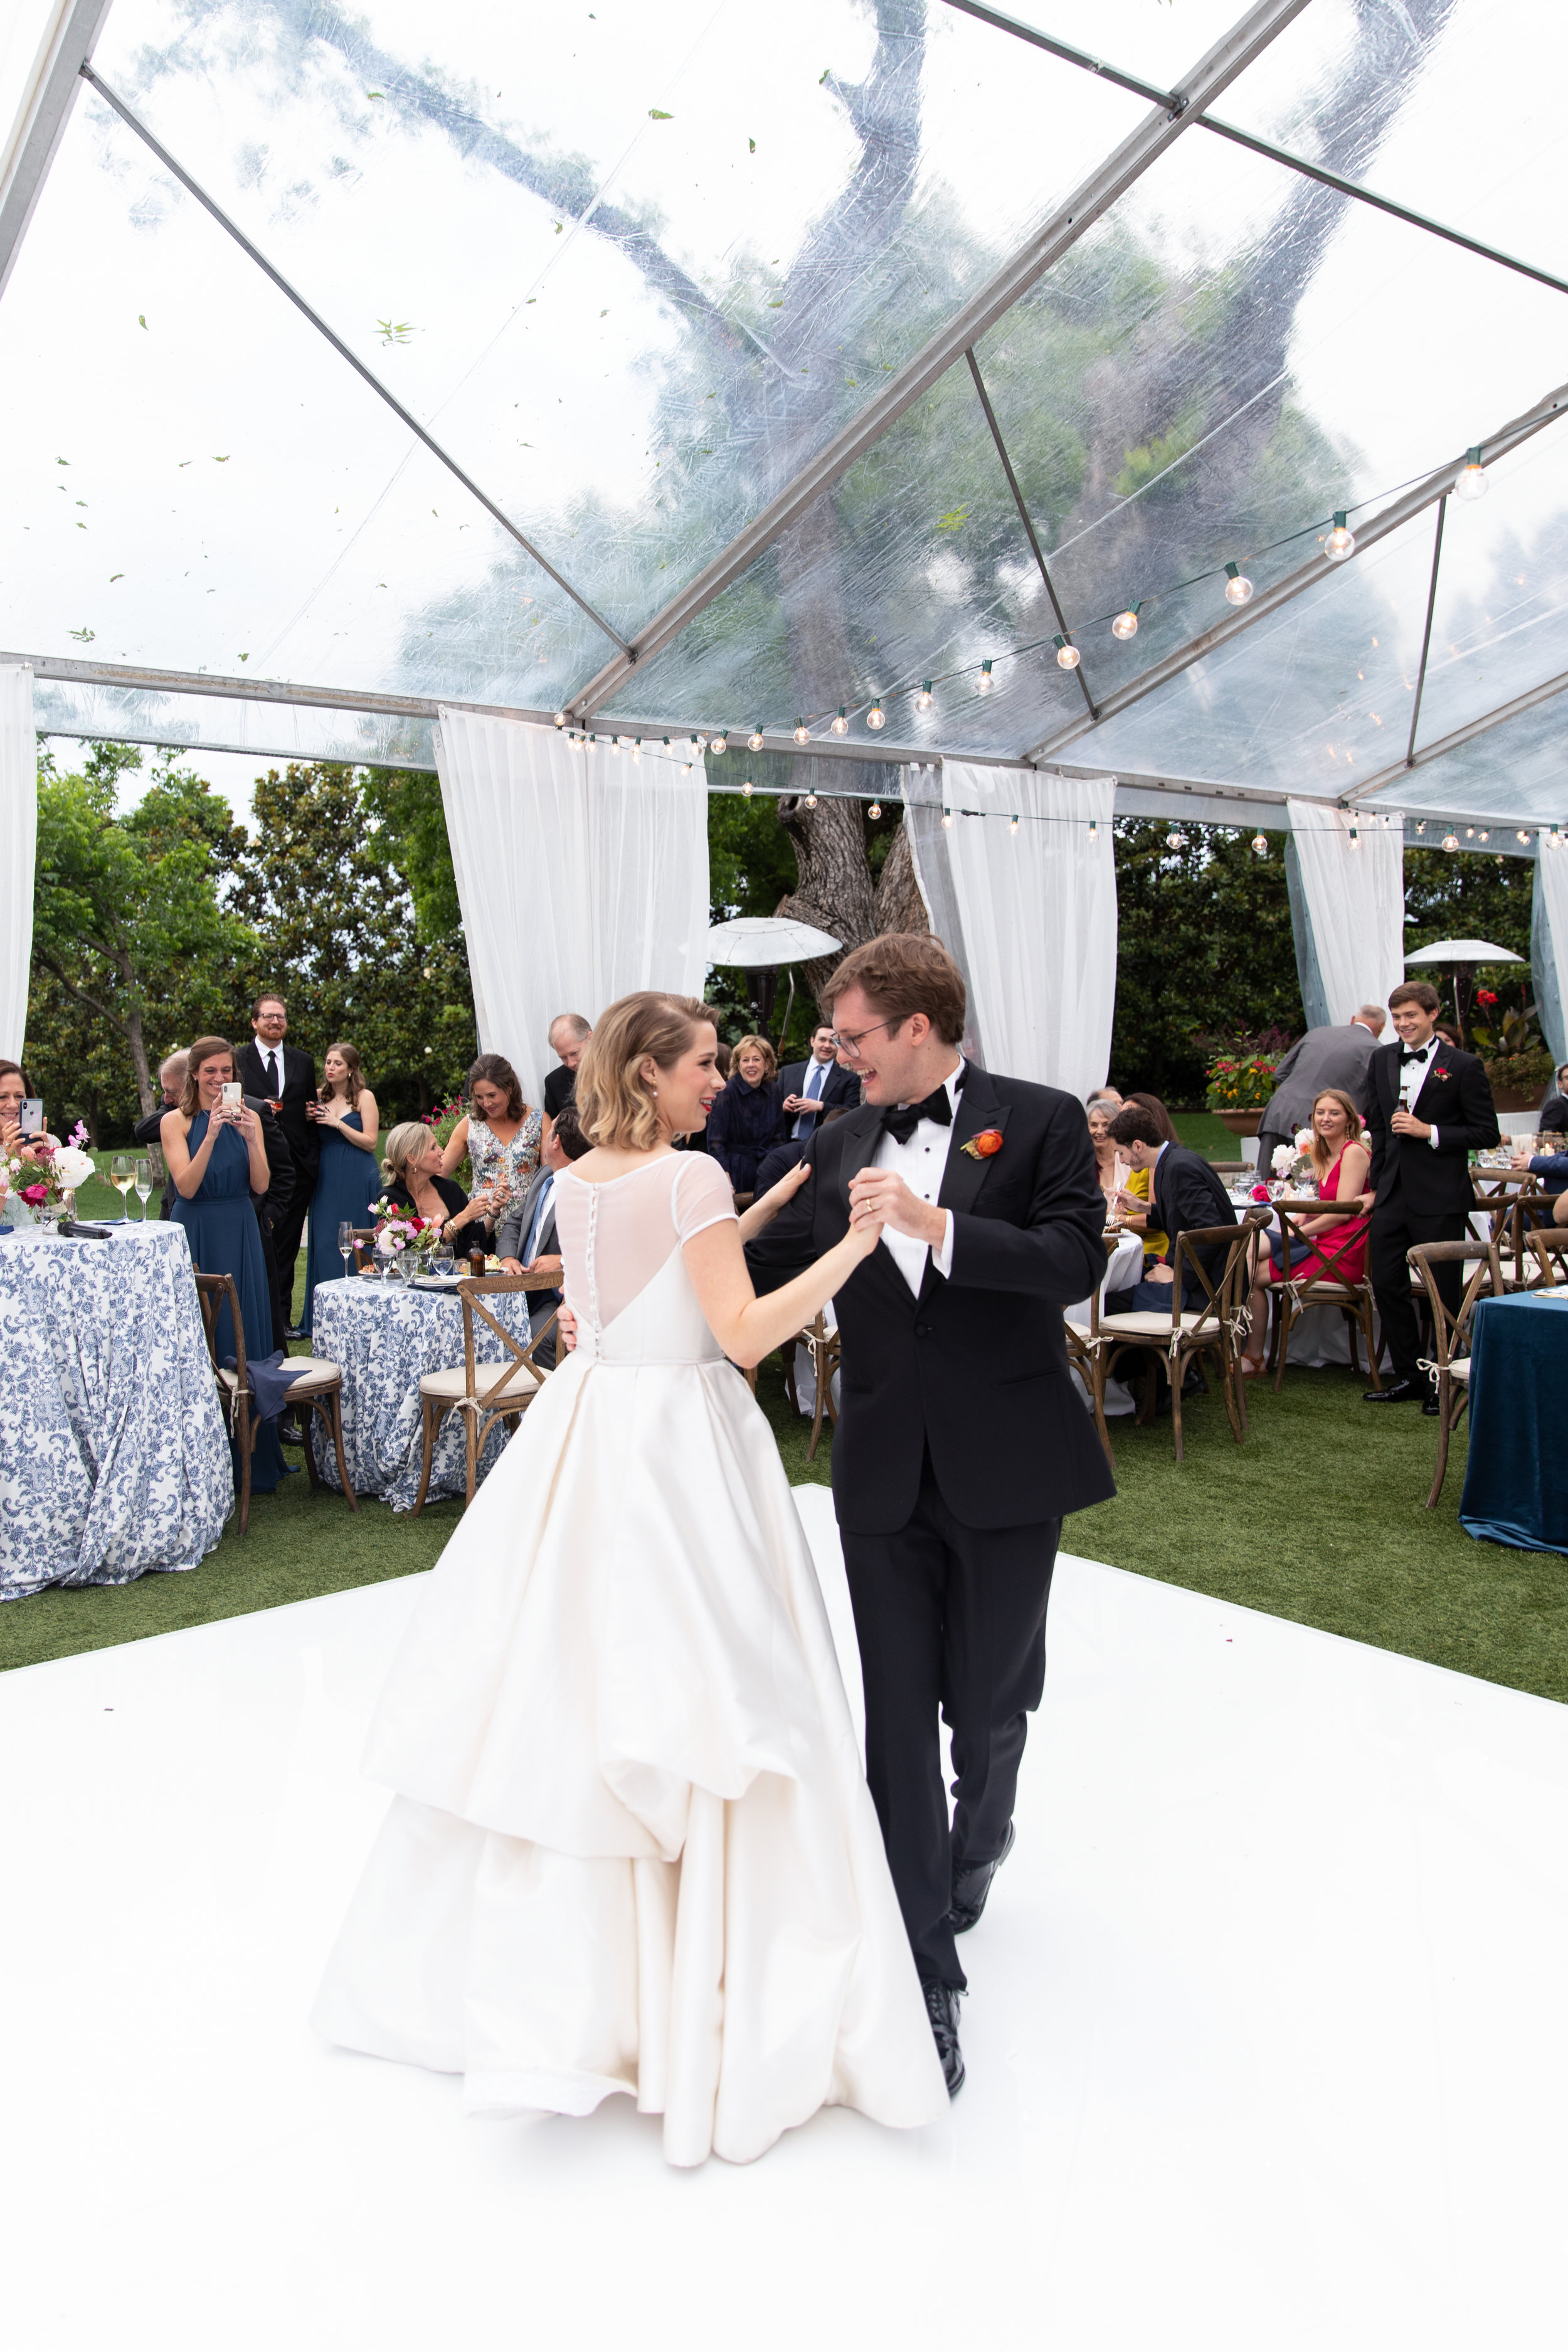 Ana-and-Nick-First-Dance-The-Dallas-Arboretum-Ivory-and-Vine.jpg